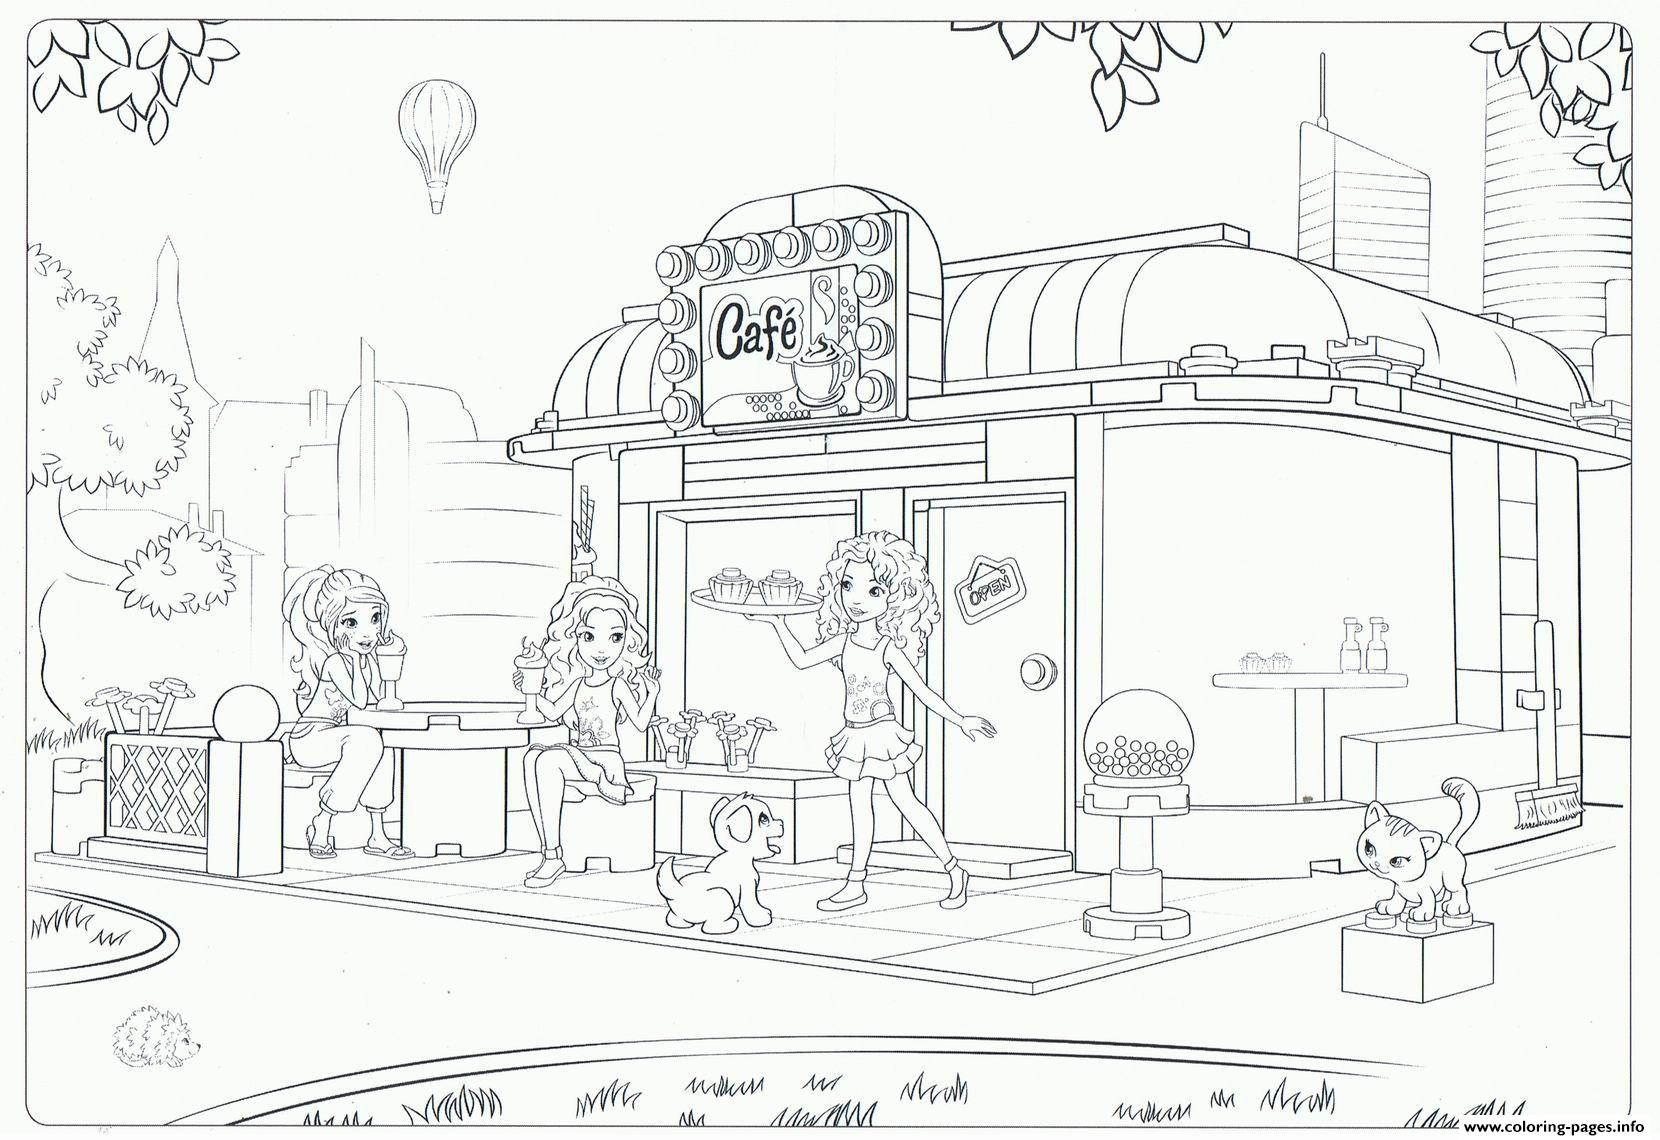 Lego friends cafe coloring pages printable for Printable lego friends coloring pages